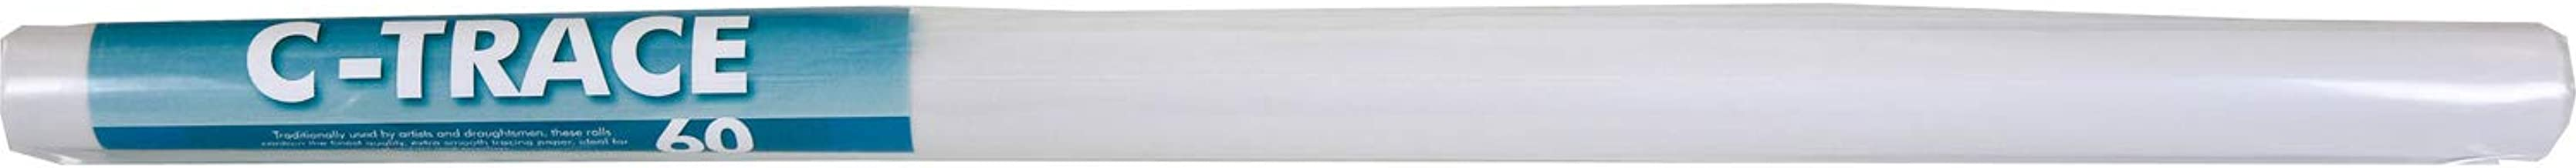 Frisk C-Trace 60gsm Roll (5 sheets) A1